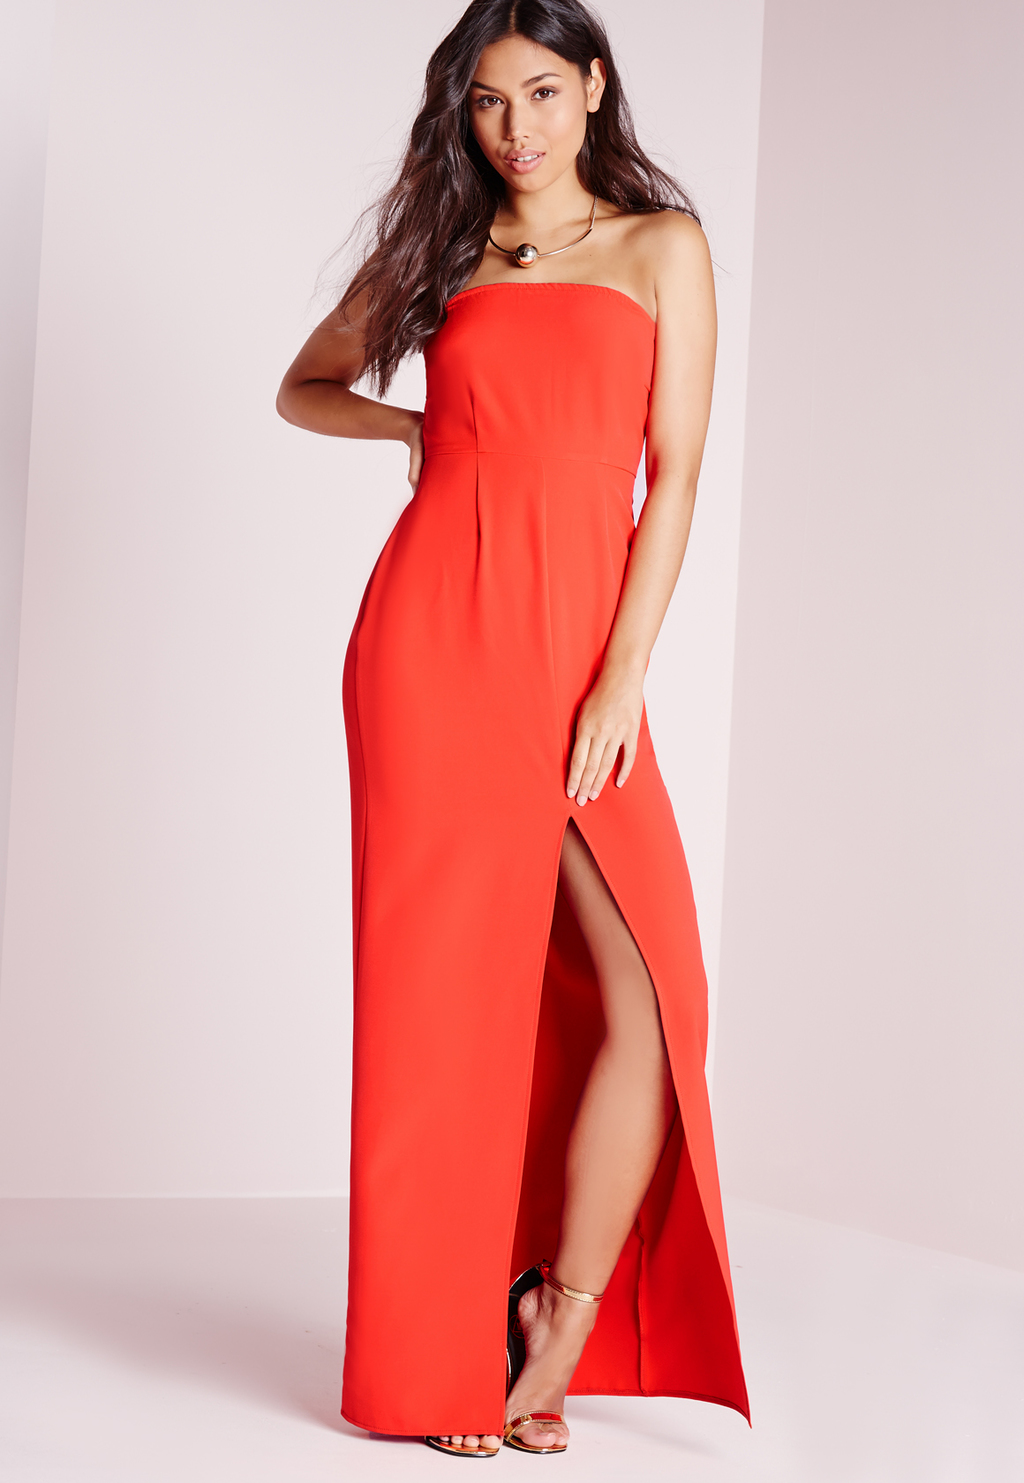 Bandeau Maxi Dress Red, Red - neckline: strapless (straight/sweetheart); pattern: plain; style: maxi dress; sleeve style: strapless; hip detail: draws attention to hips; predominant colour: bright orange; occasions: evening; length: floor length; fit: body skimming; fibres: polyester/polyamide - stretch; sleeve length: sleeveless; pattern type: fabric; texture group: jersey - stretchy/drapey; season: s/s 2016; wardrobe: event